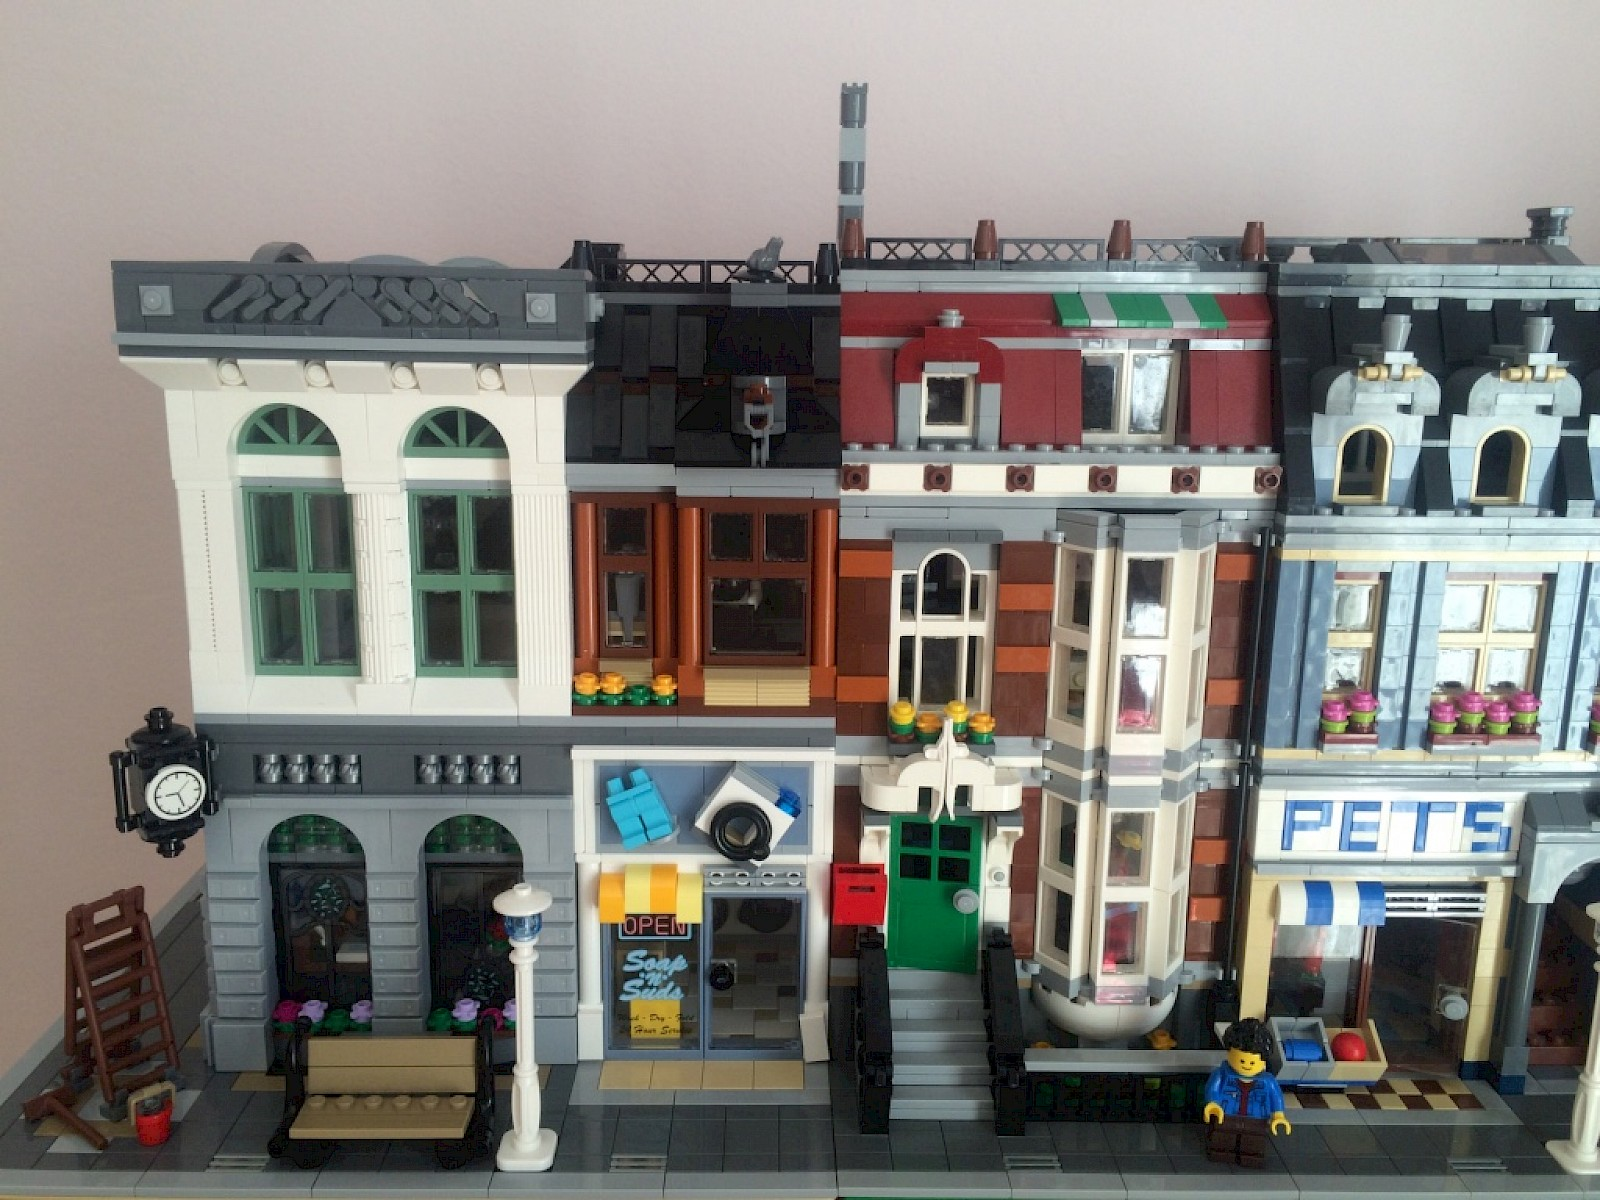 lego houses bioreg biochromatography and. Black Bedroom Furniture Sets. Home Design Ideas